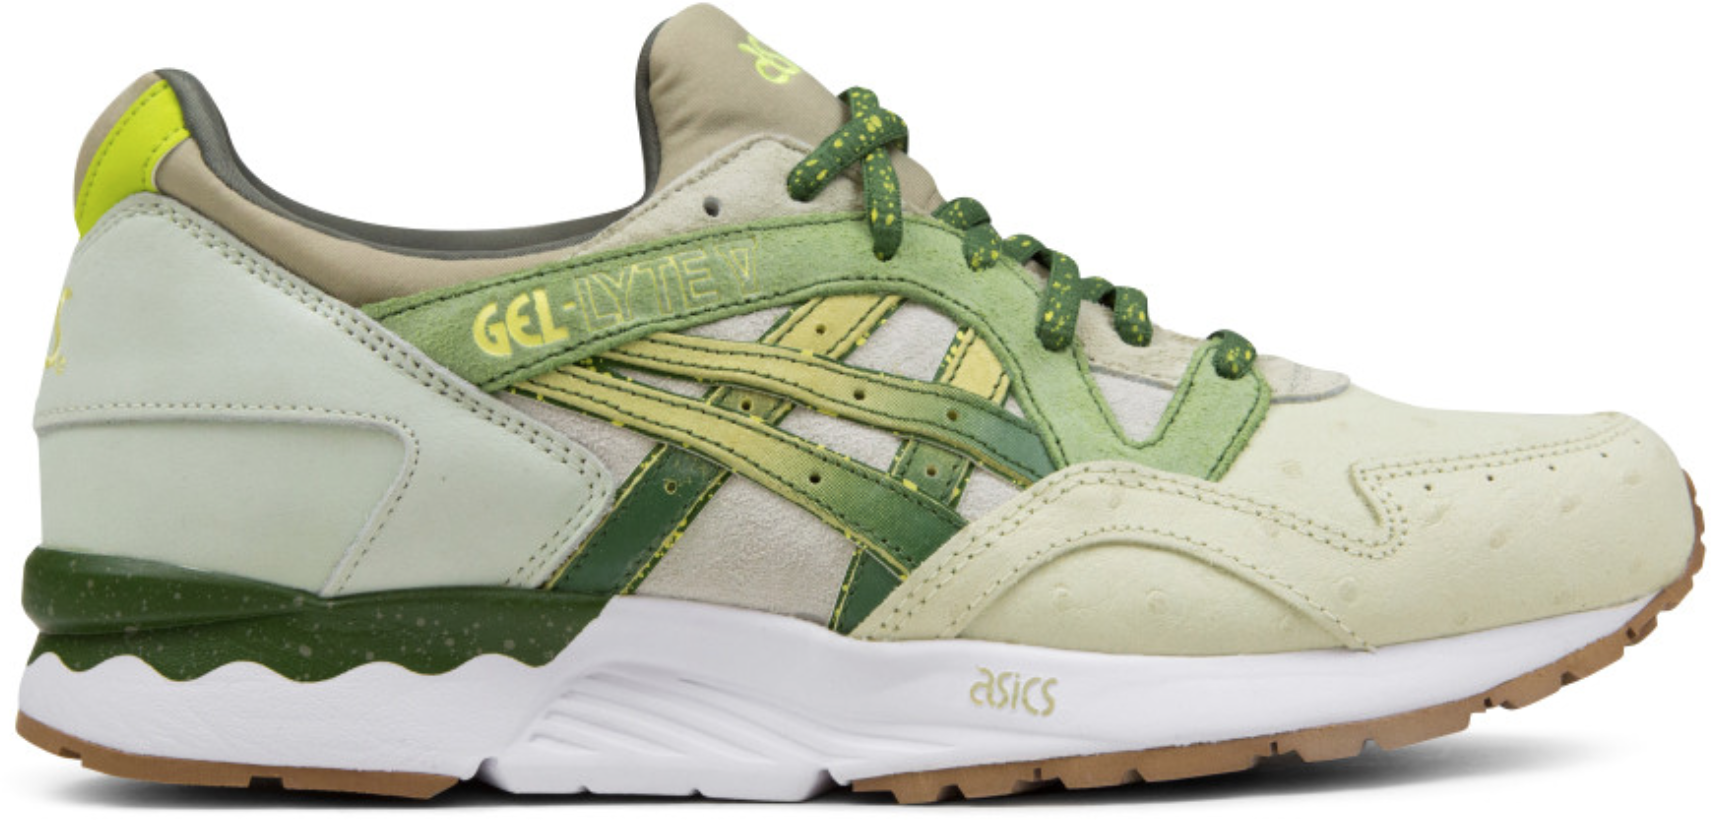 ASICS Gel Lyte V Feature Prickly Pear Cactus